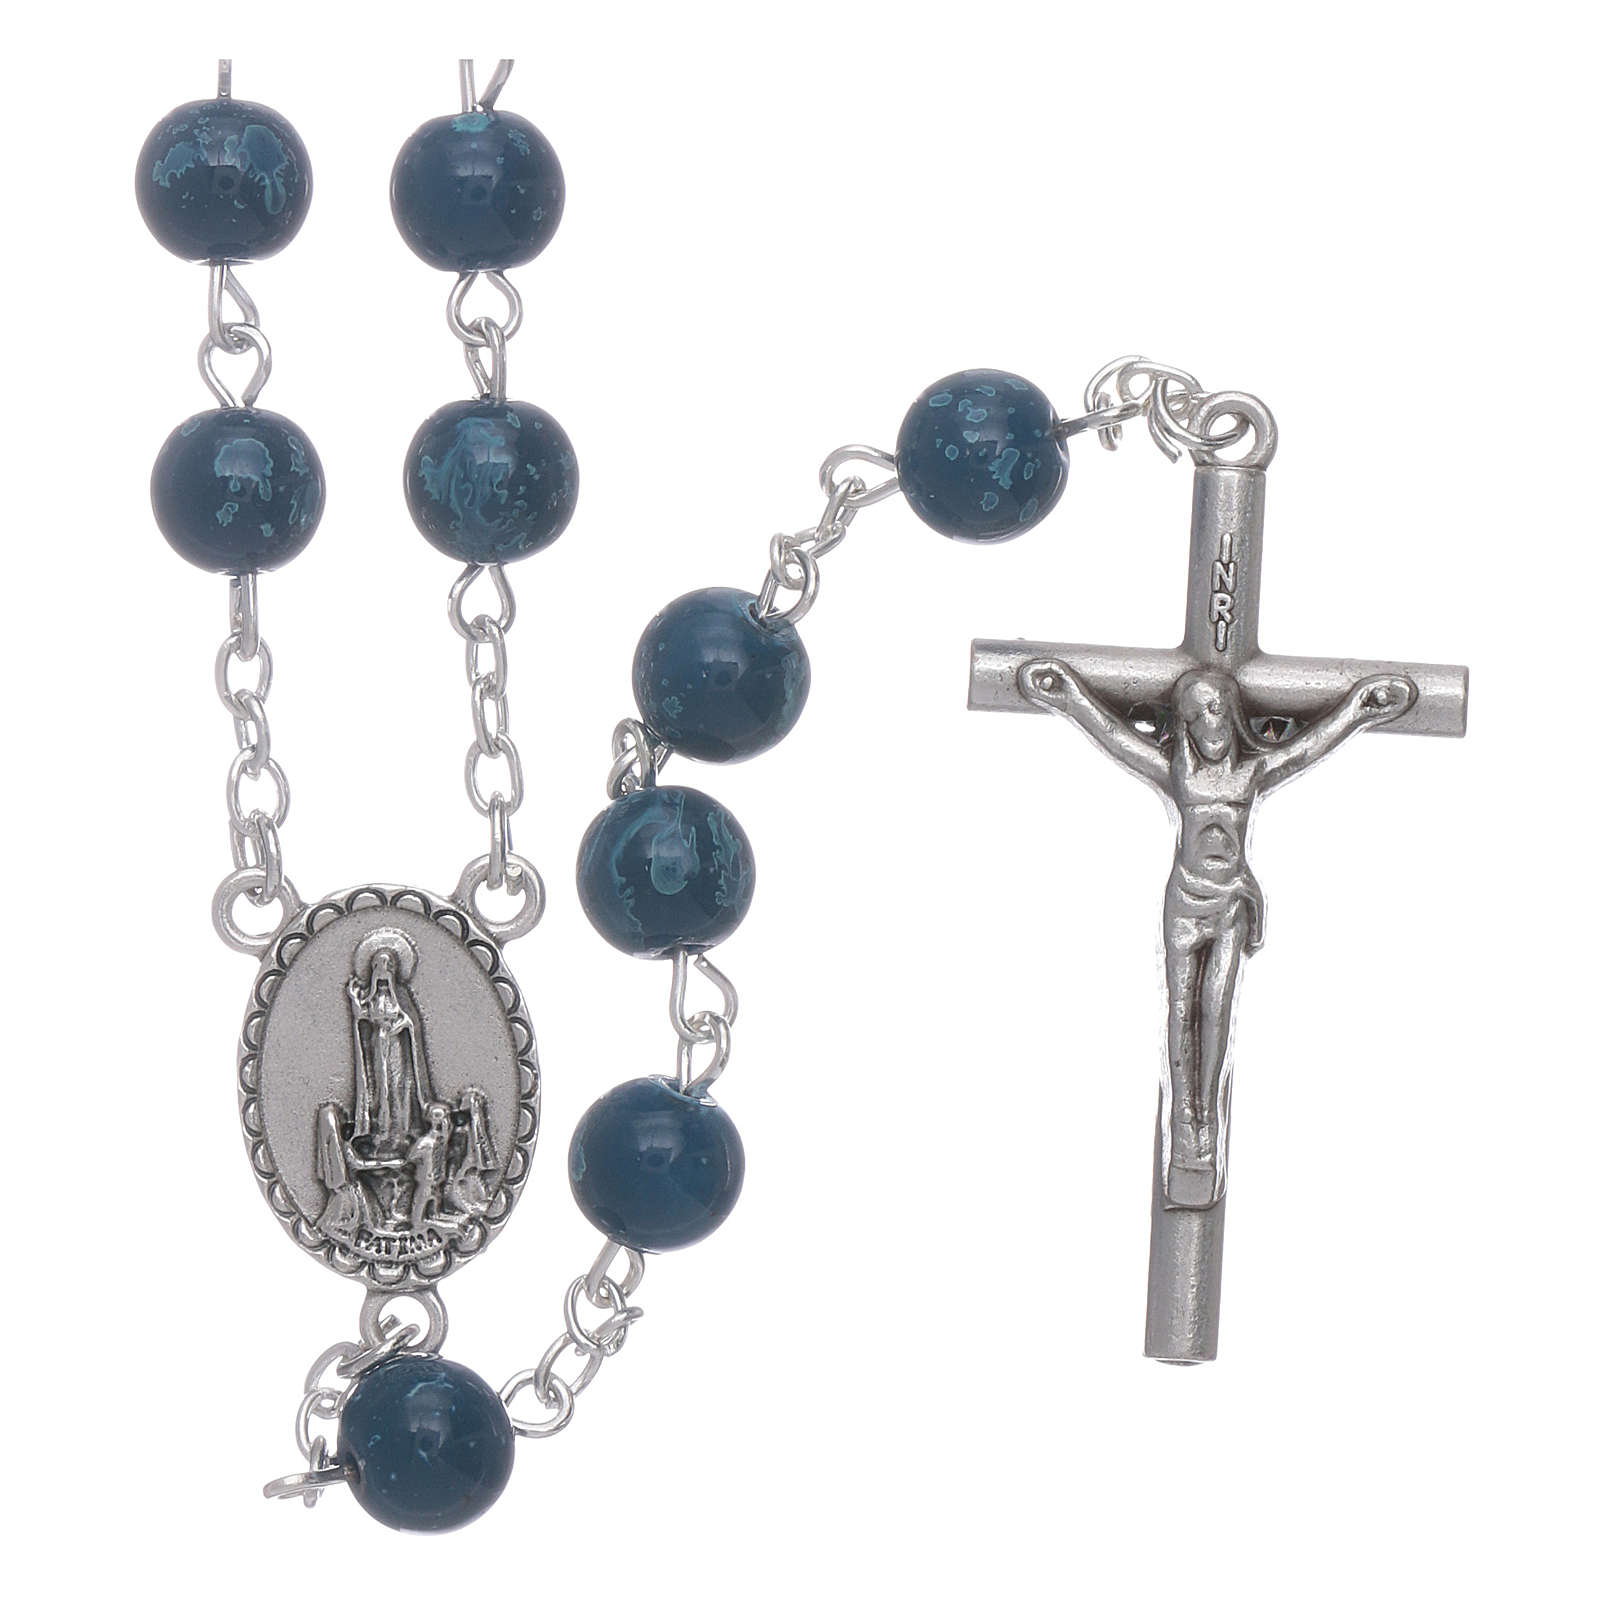 Our Lady of Fatima blue glass rosary beads with box 4